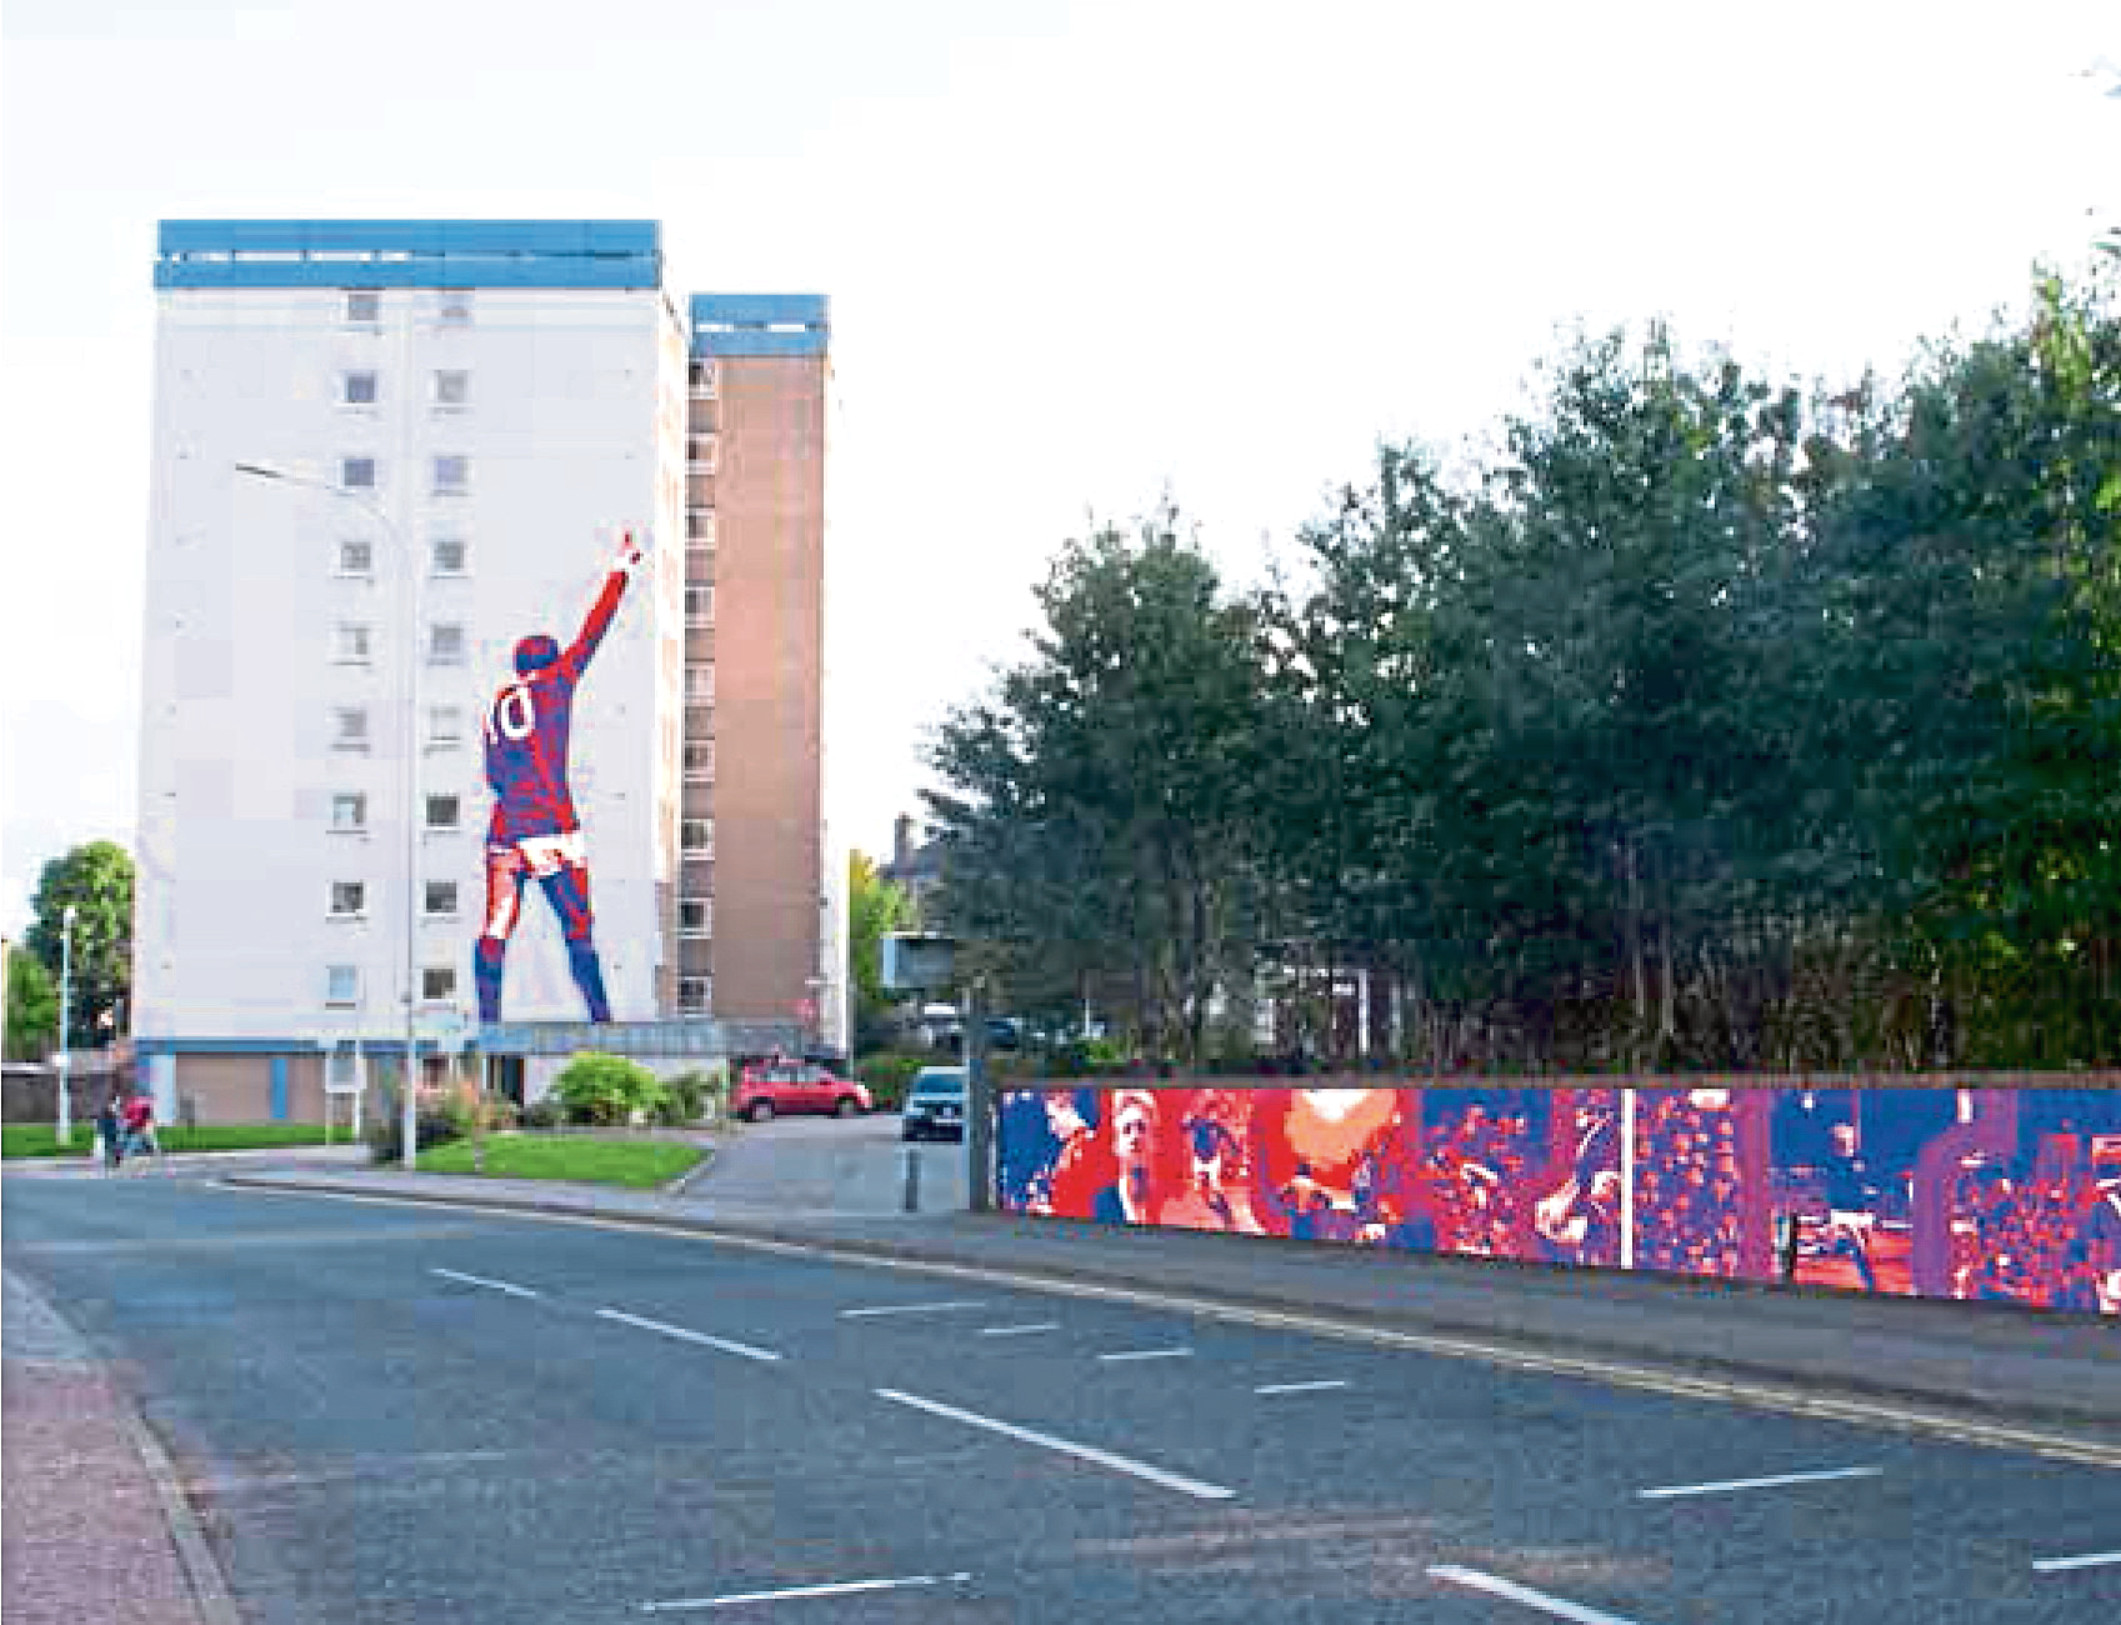 The 10-stop walking trail would see murals celebrating Denis Law created around the Printfield area